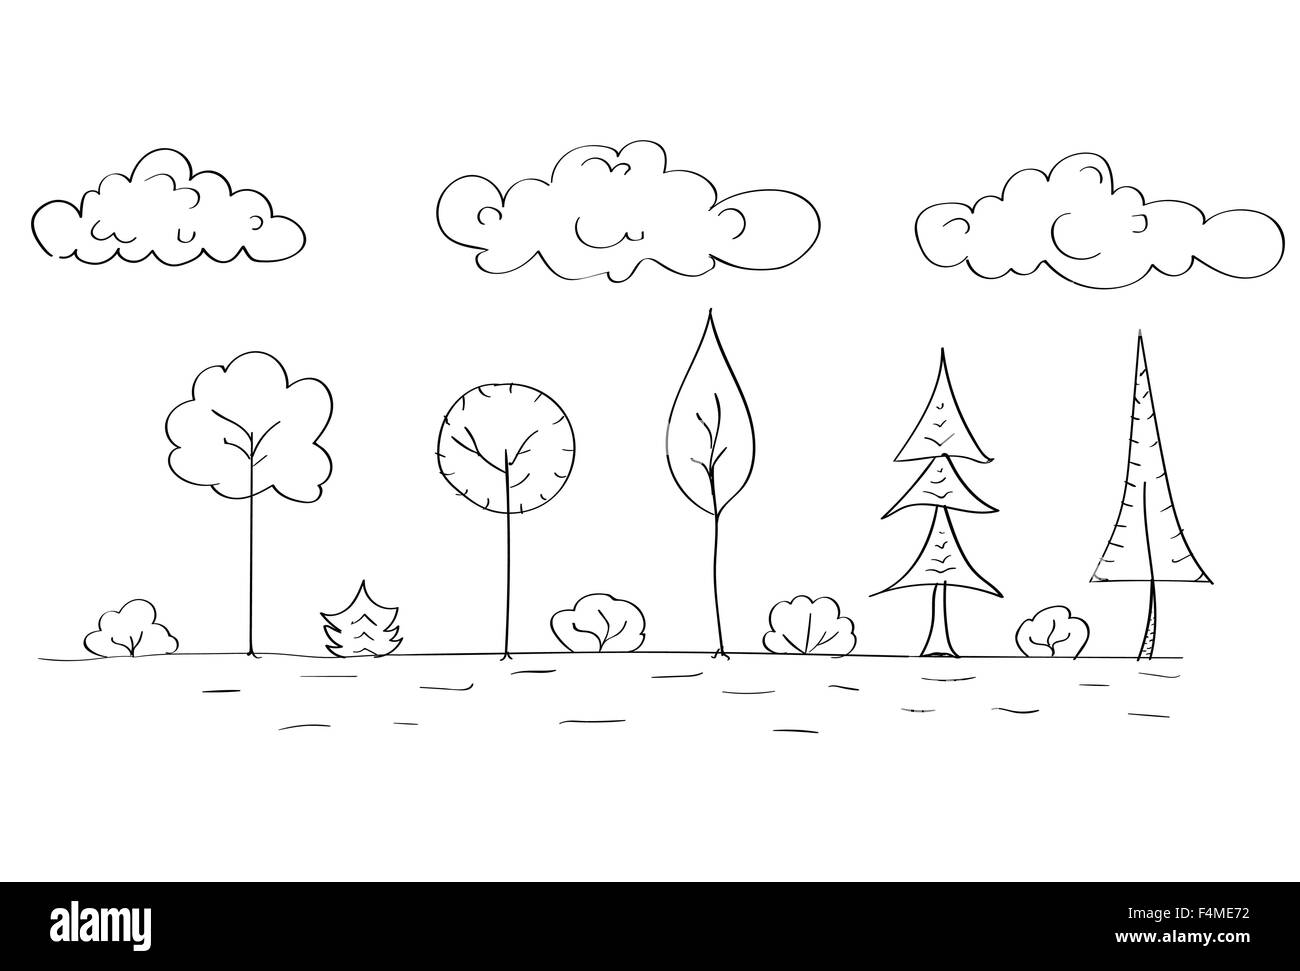 Simple Line Art Designs : Forest tree woods sketch simple line child hand drawing stock vector